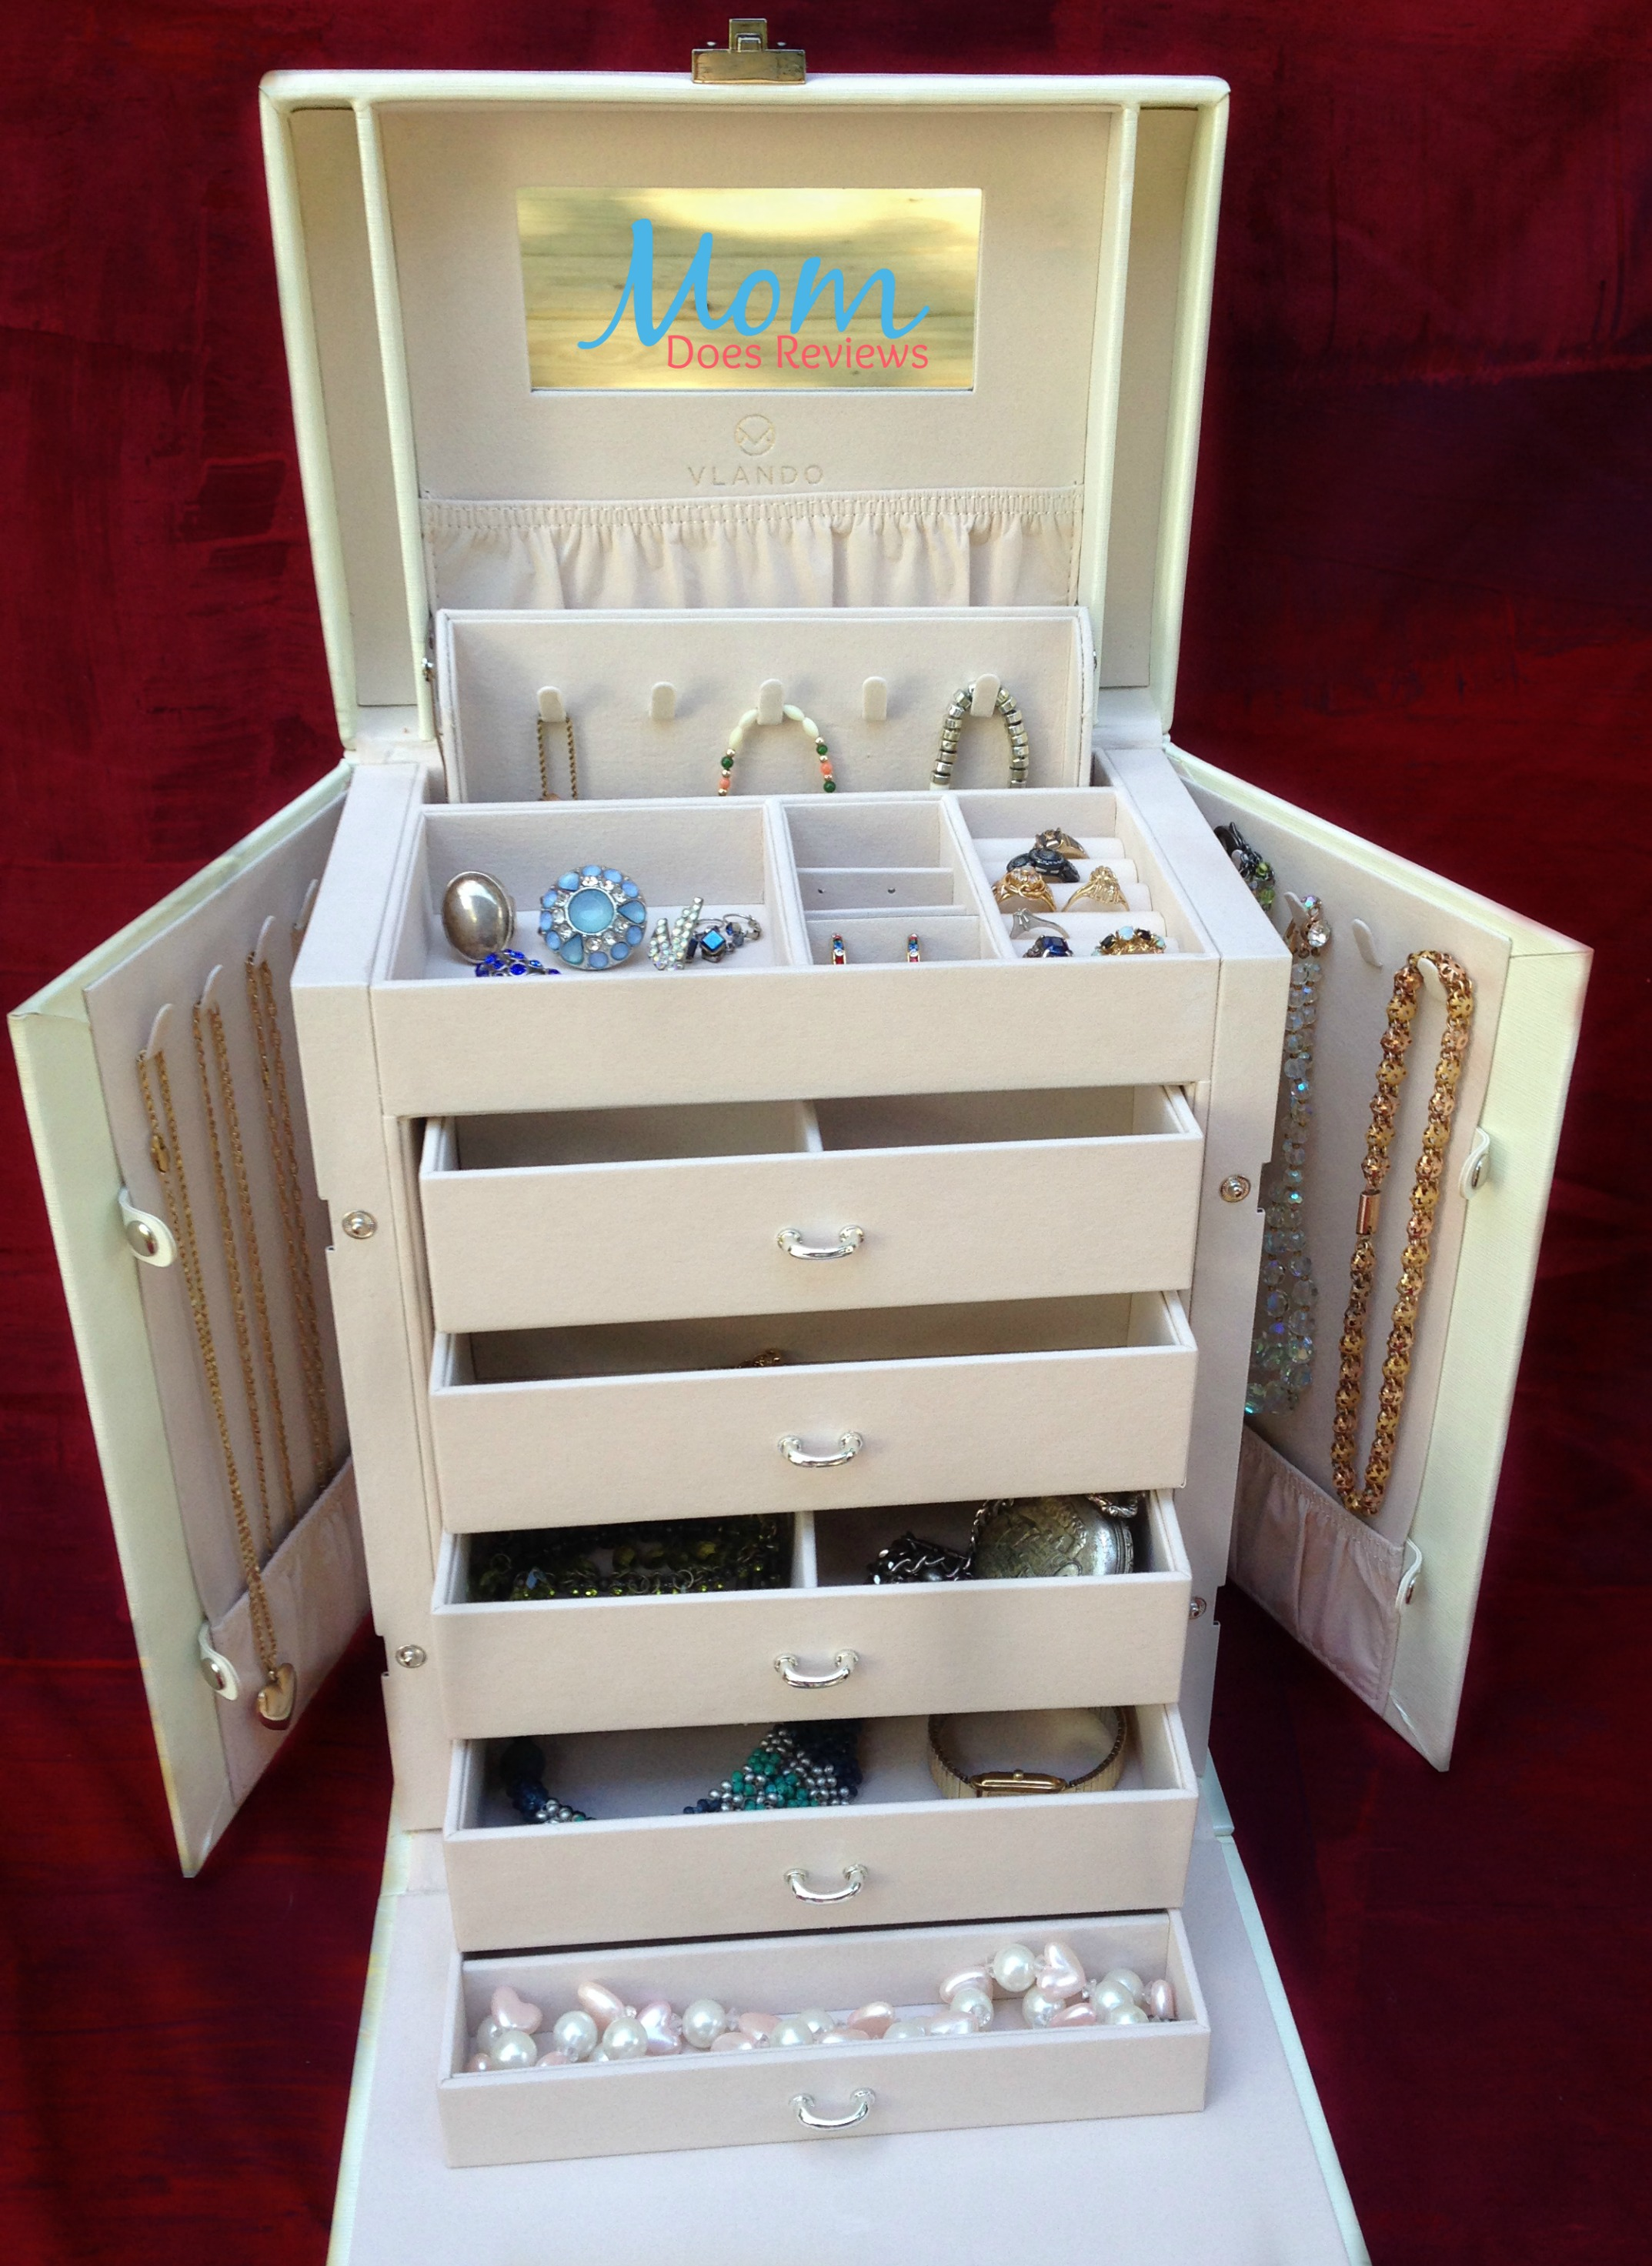 Vlando The Jewelry Box Every Woman Needs Review